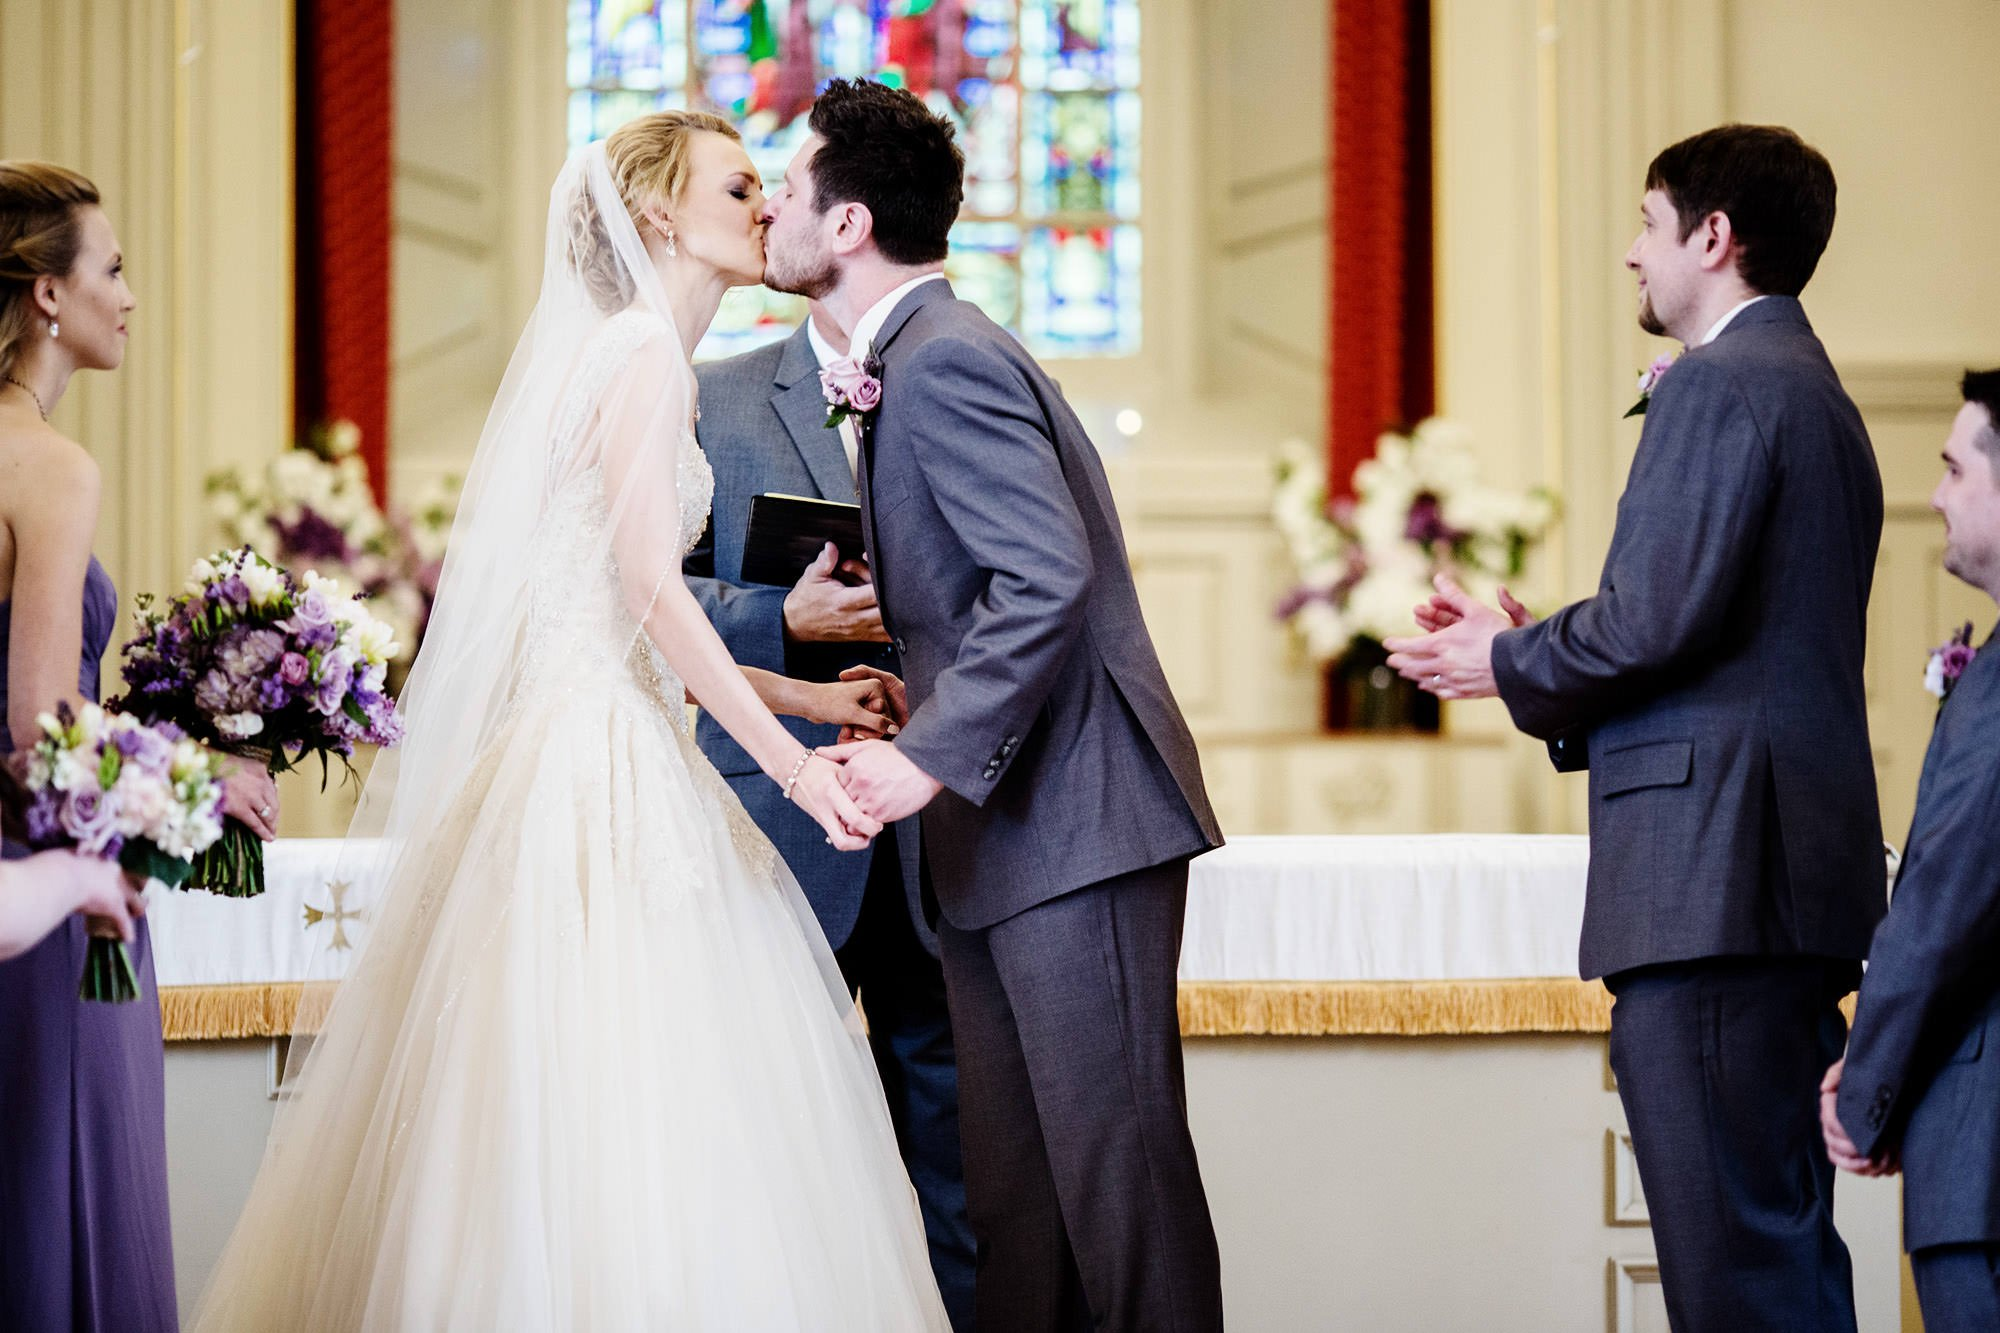 The bride and groom share their first kiss at St. Mark's United Methodist Church